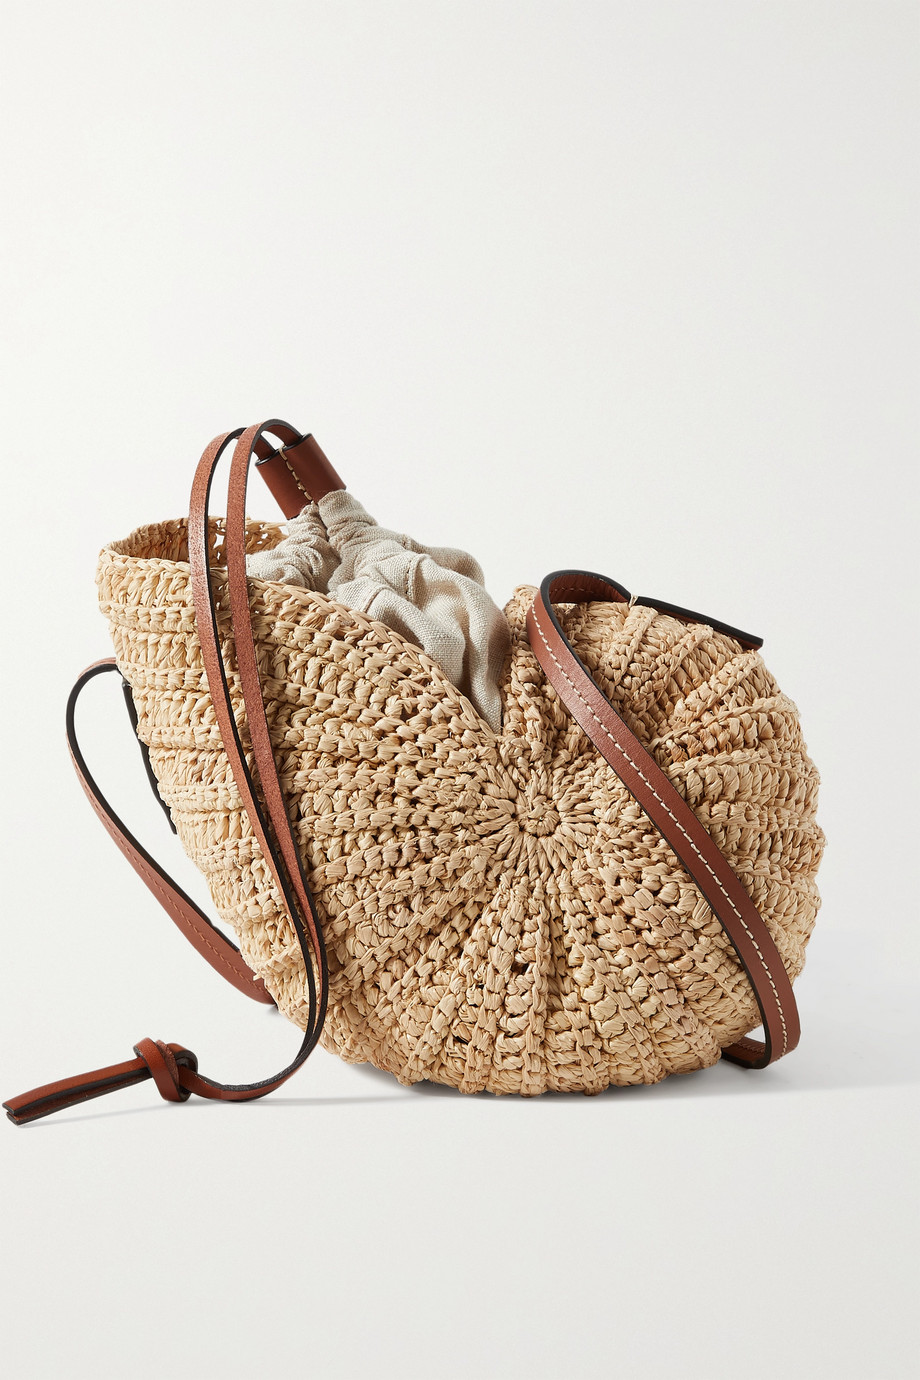 LOEWE + Paula's Ibiza Moon Shell leather-trimmed raffia and hemp shoulder bag